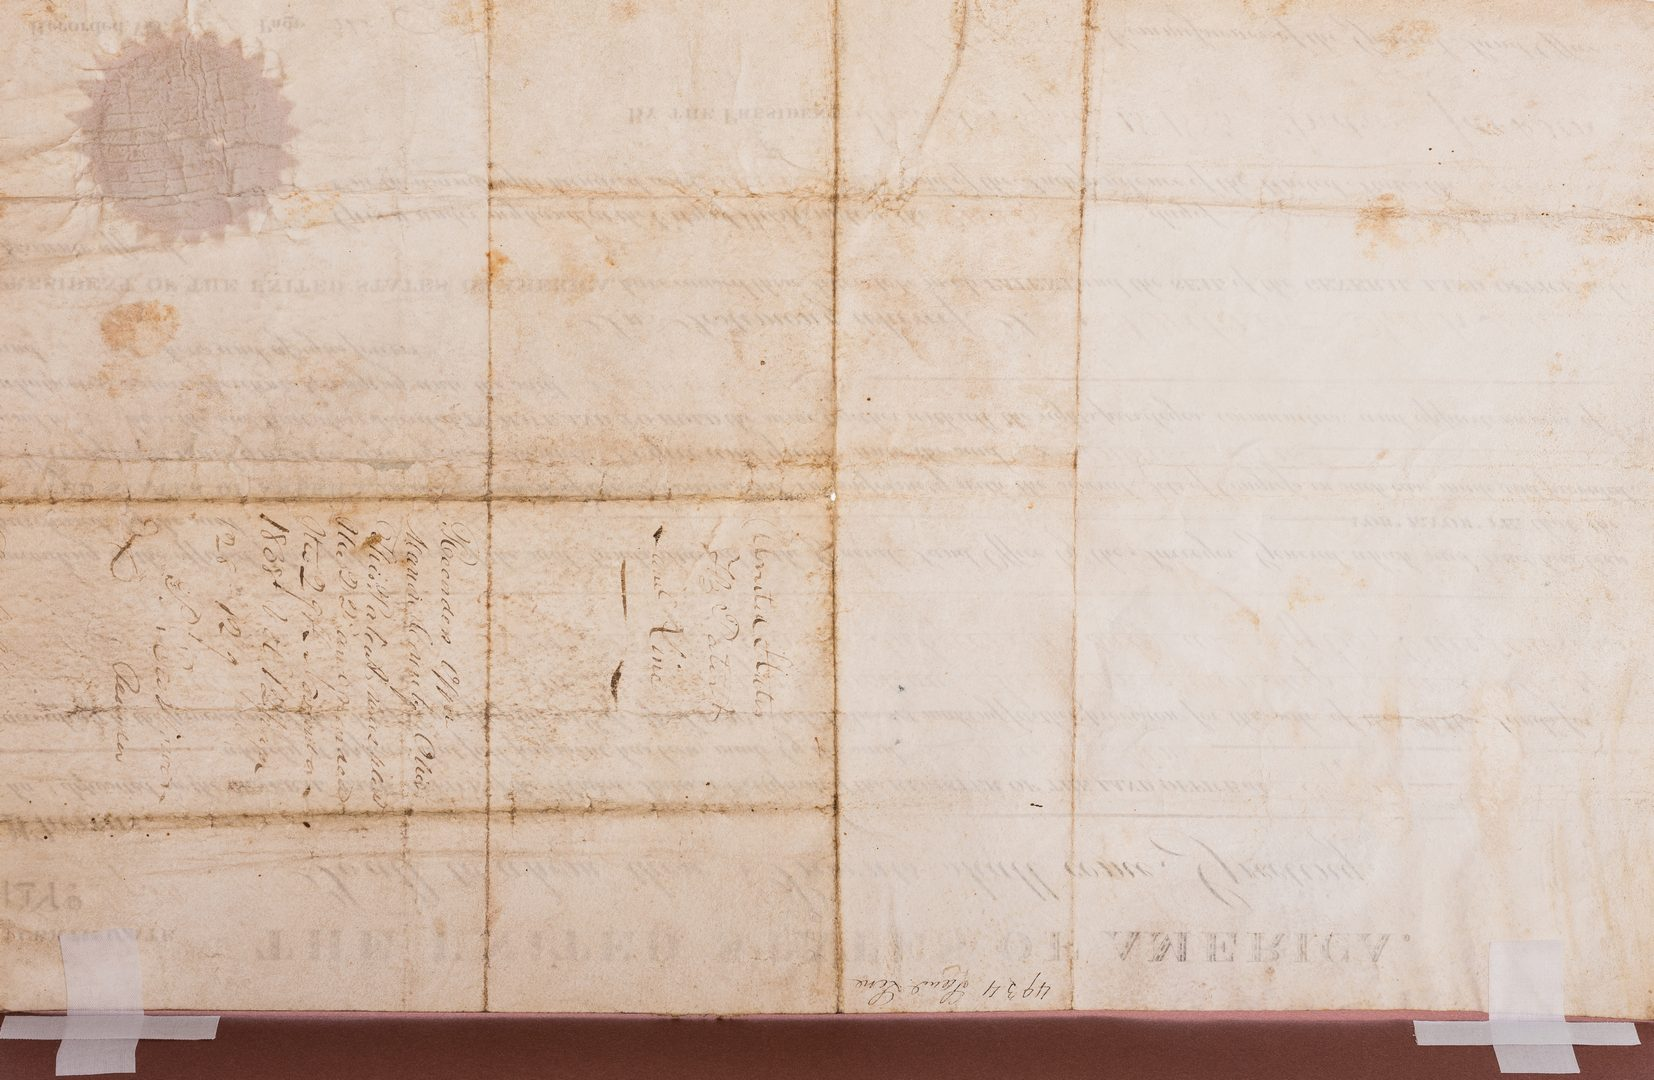 Lot 273: 2 Andrew Jackson Ohio Land Grants, 1 Signed